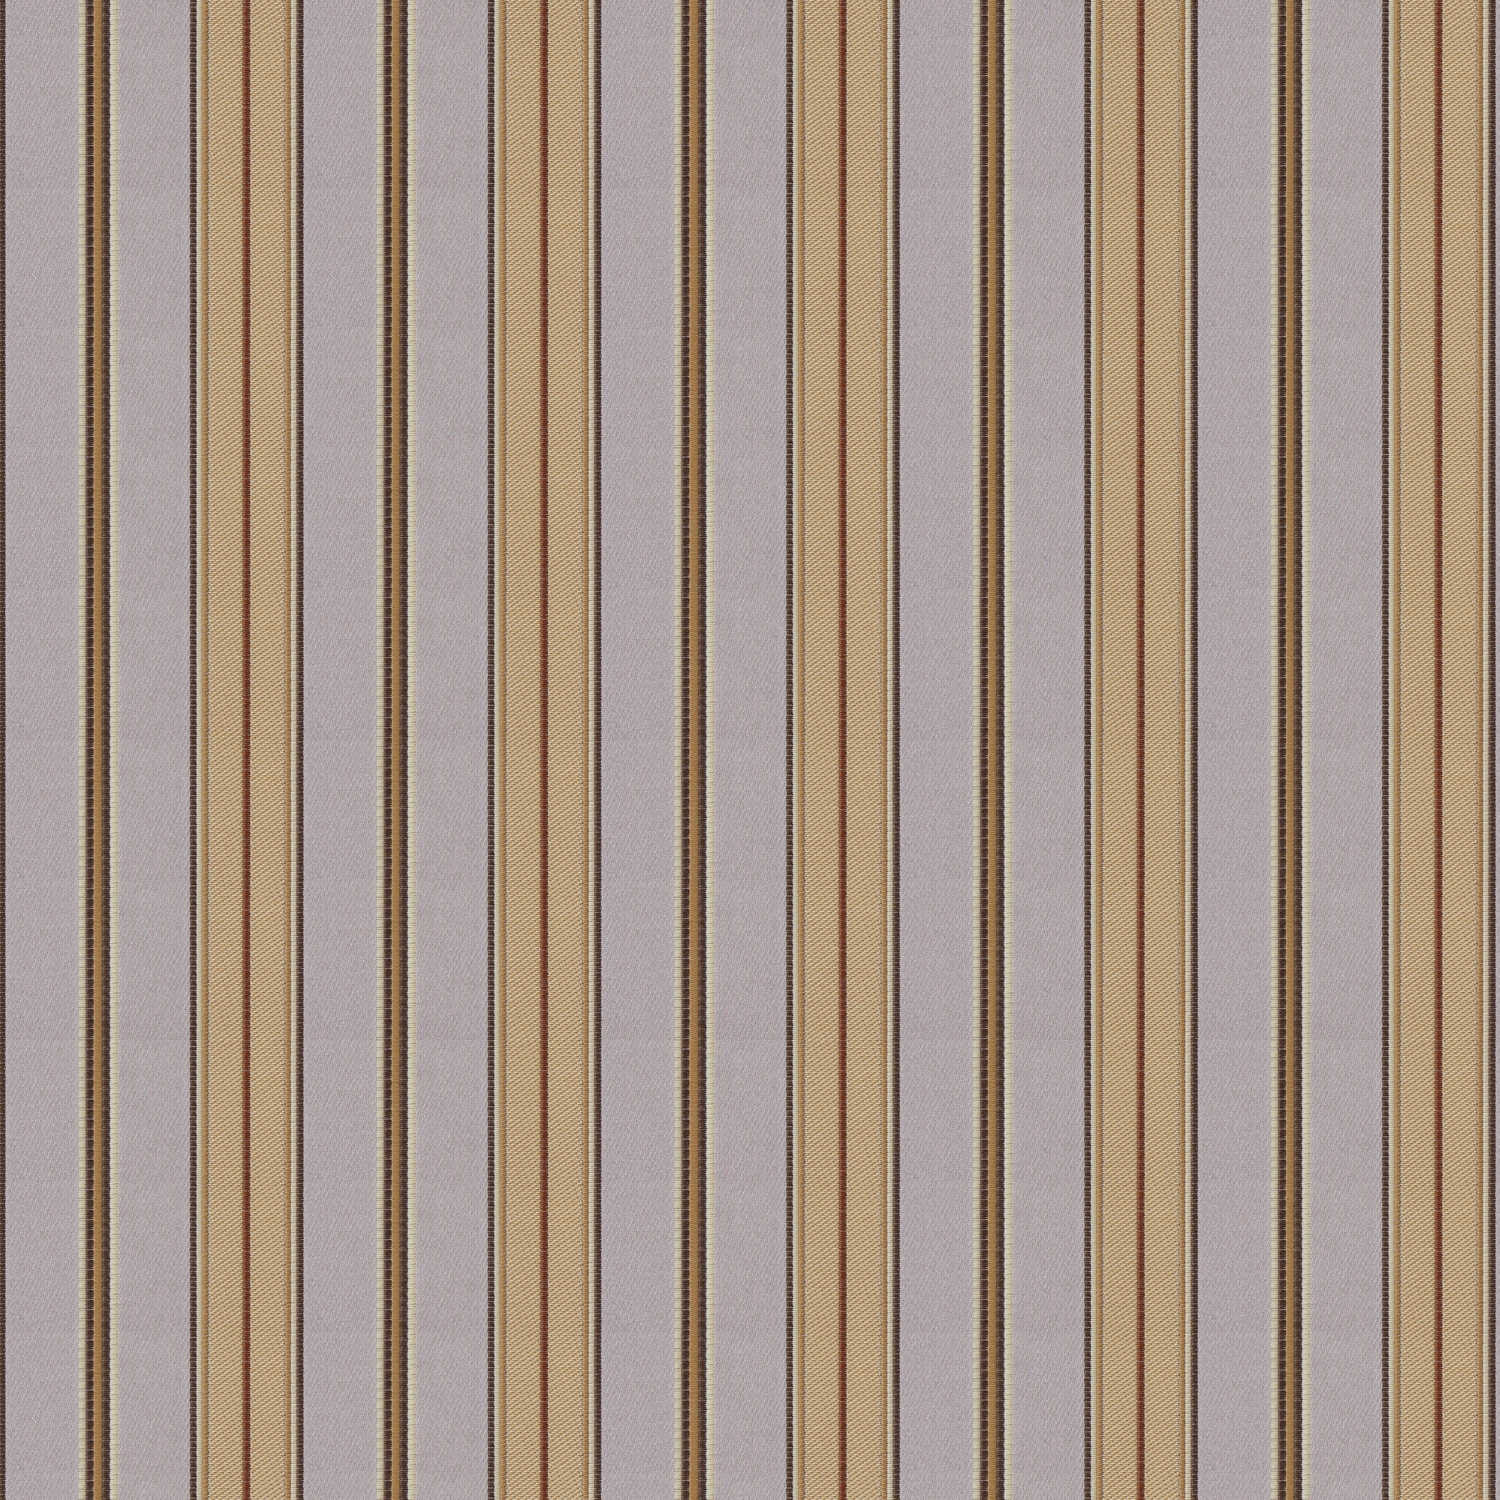 Shade stripe 21